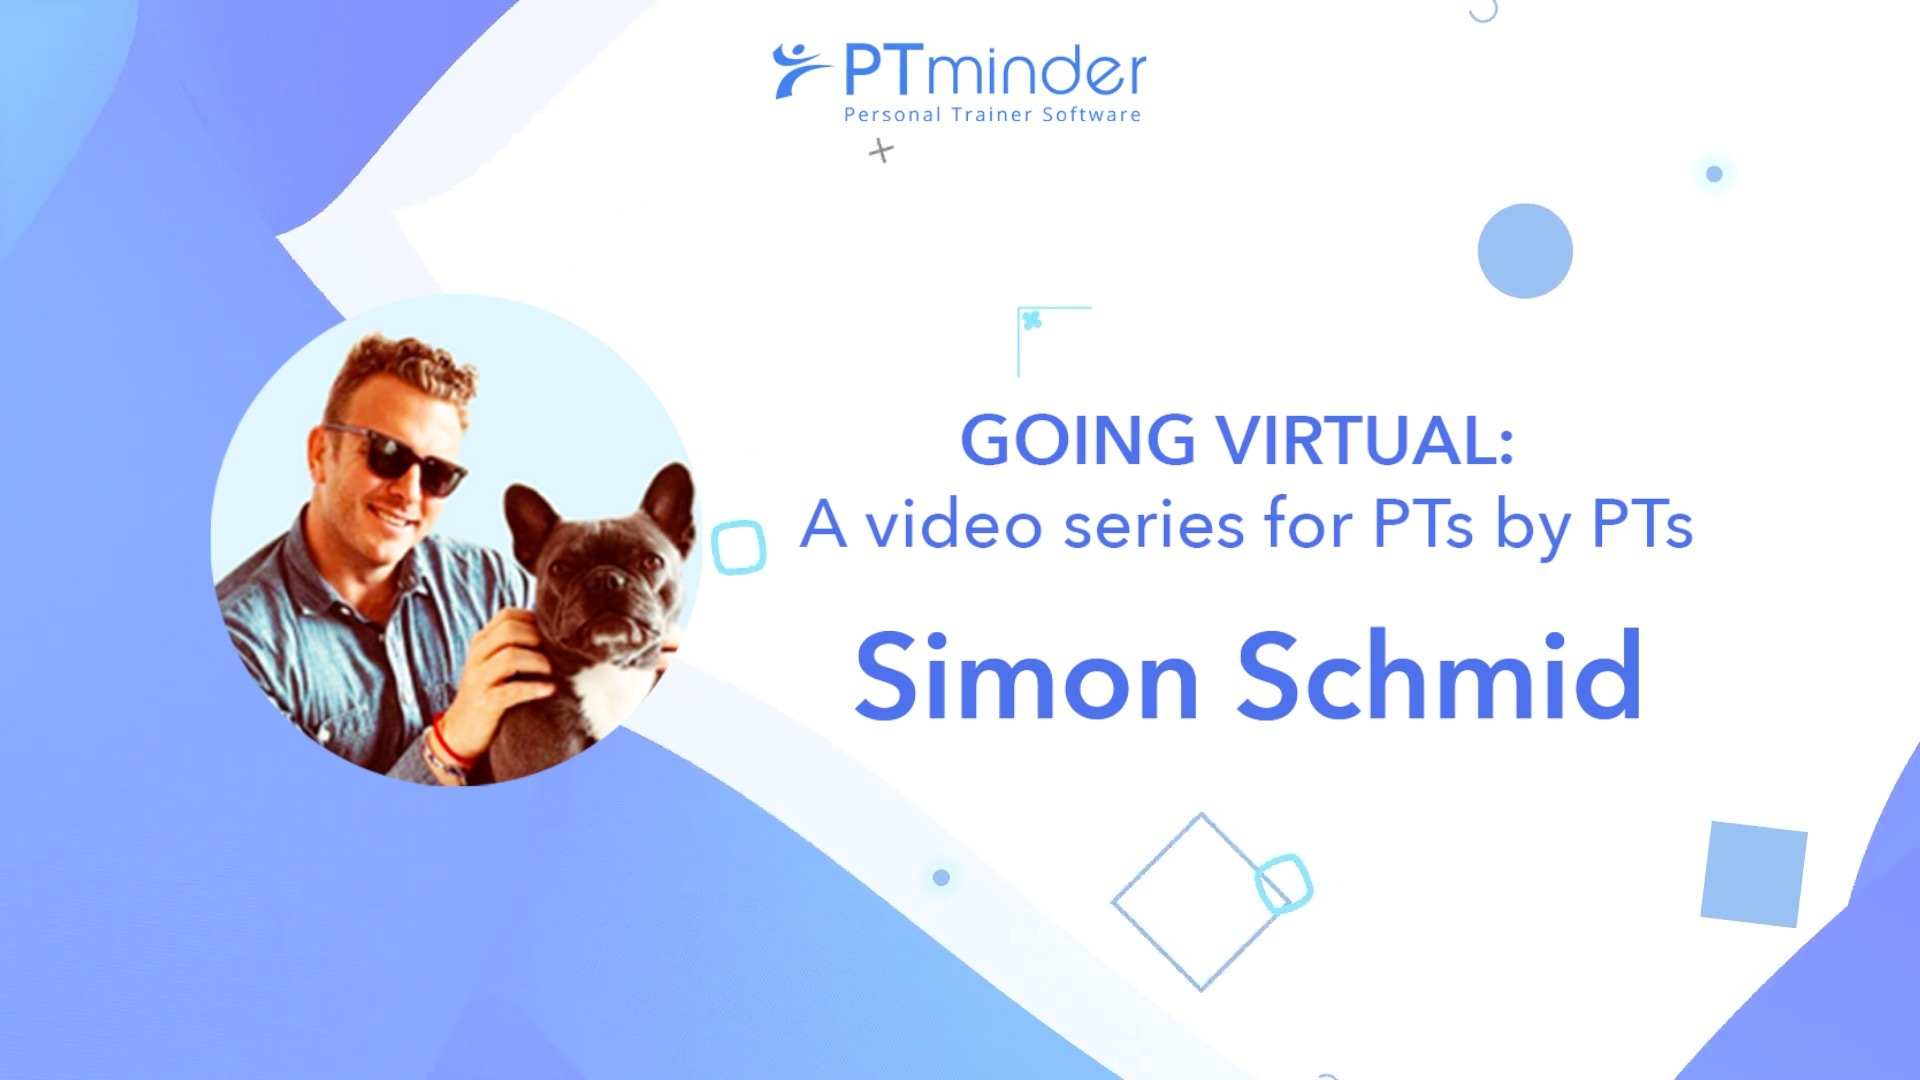 Simon Schmid goes virtual: a video series by PTs for PTs